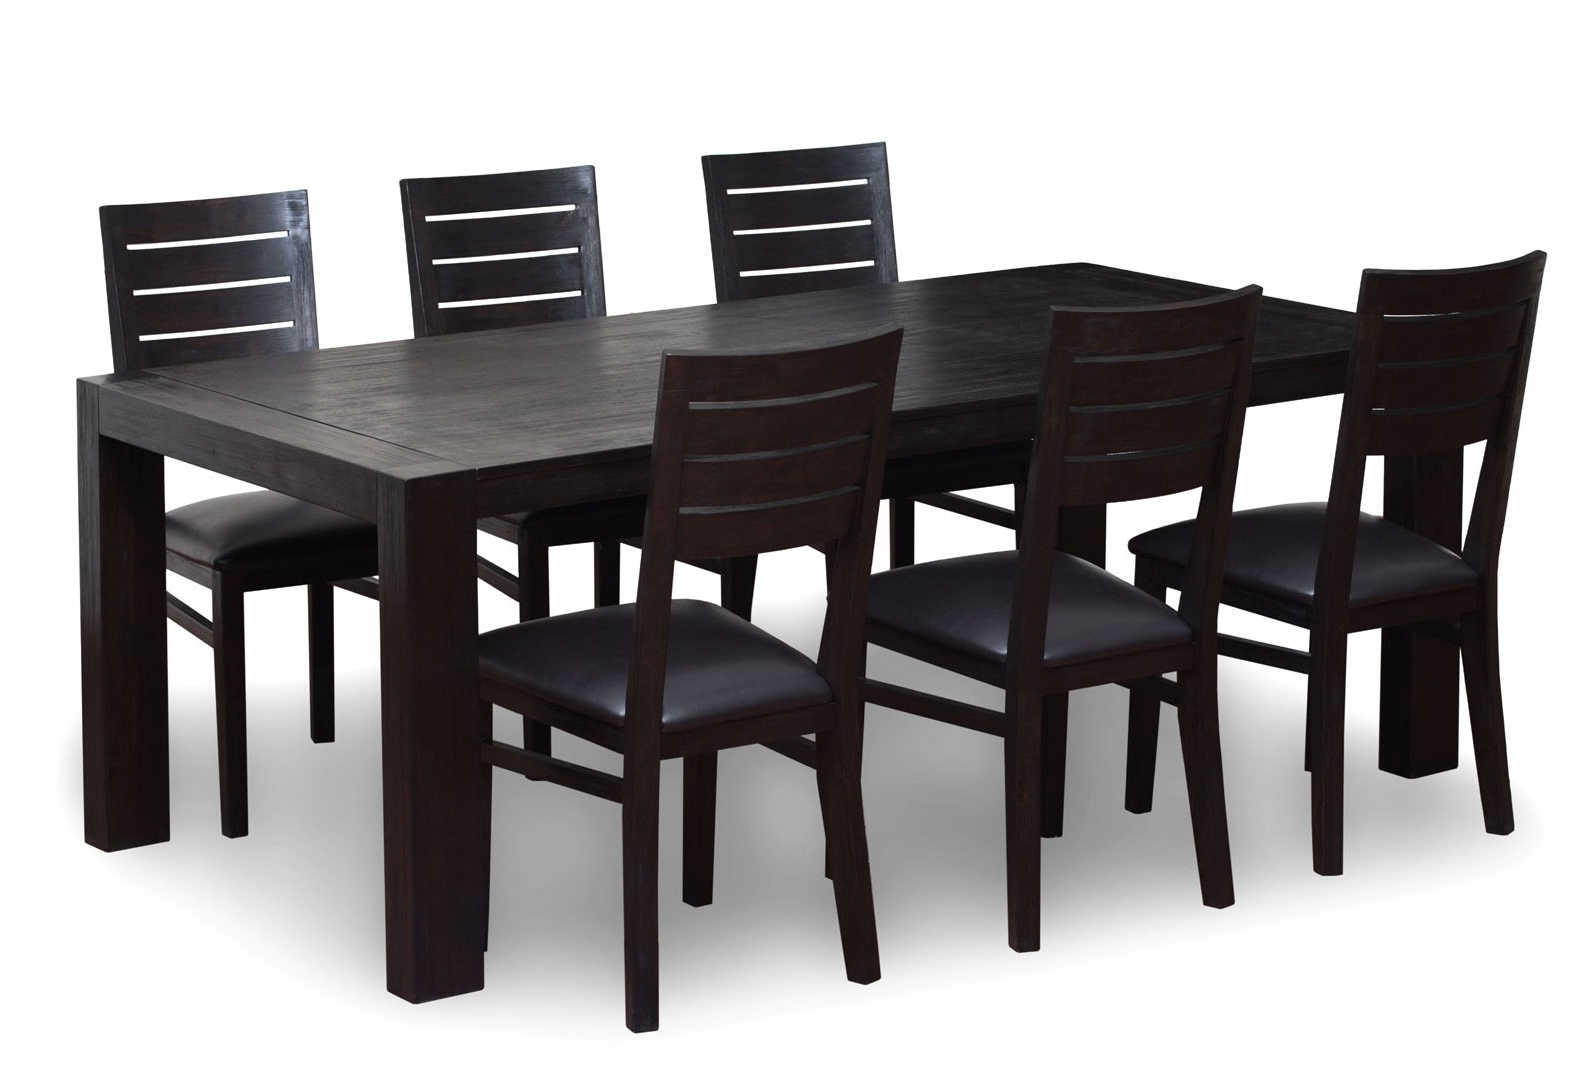 Widely Used 6 Seat Dining Tables And Chairs Regarding 6 Seater Wooden Dining Table Set – Antique Ebony (View 6 of 25)